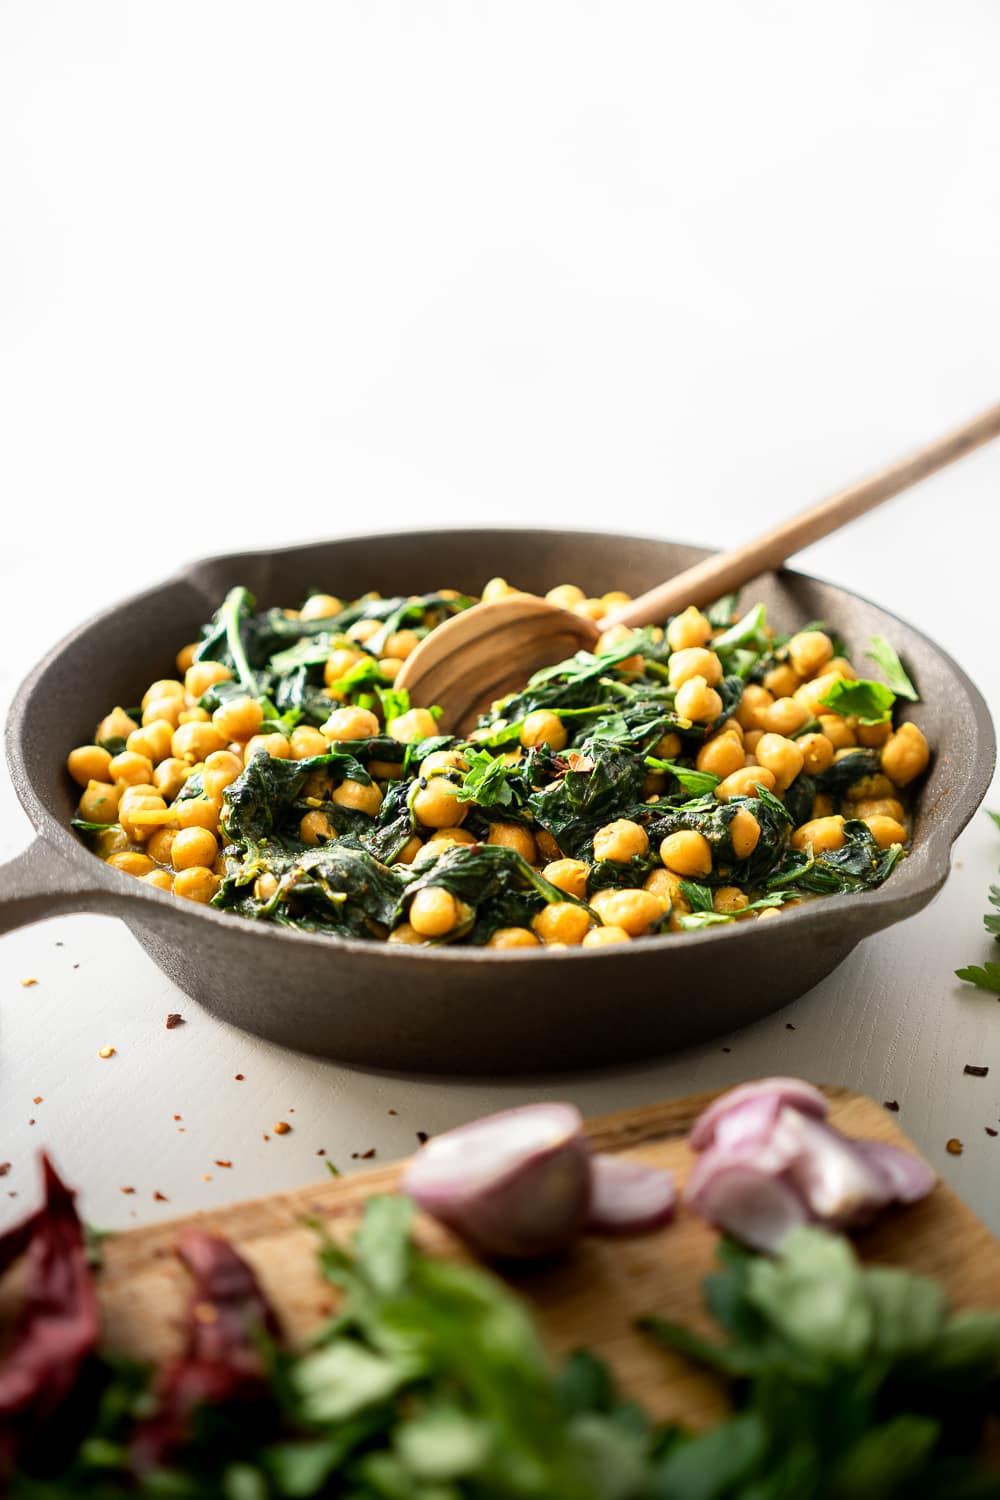 10 MINUTE CHICKPEA CURRY PERFECT FOR MEAL PREP GATHERING DREAMS